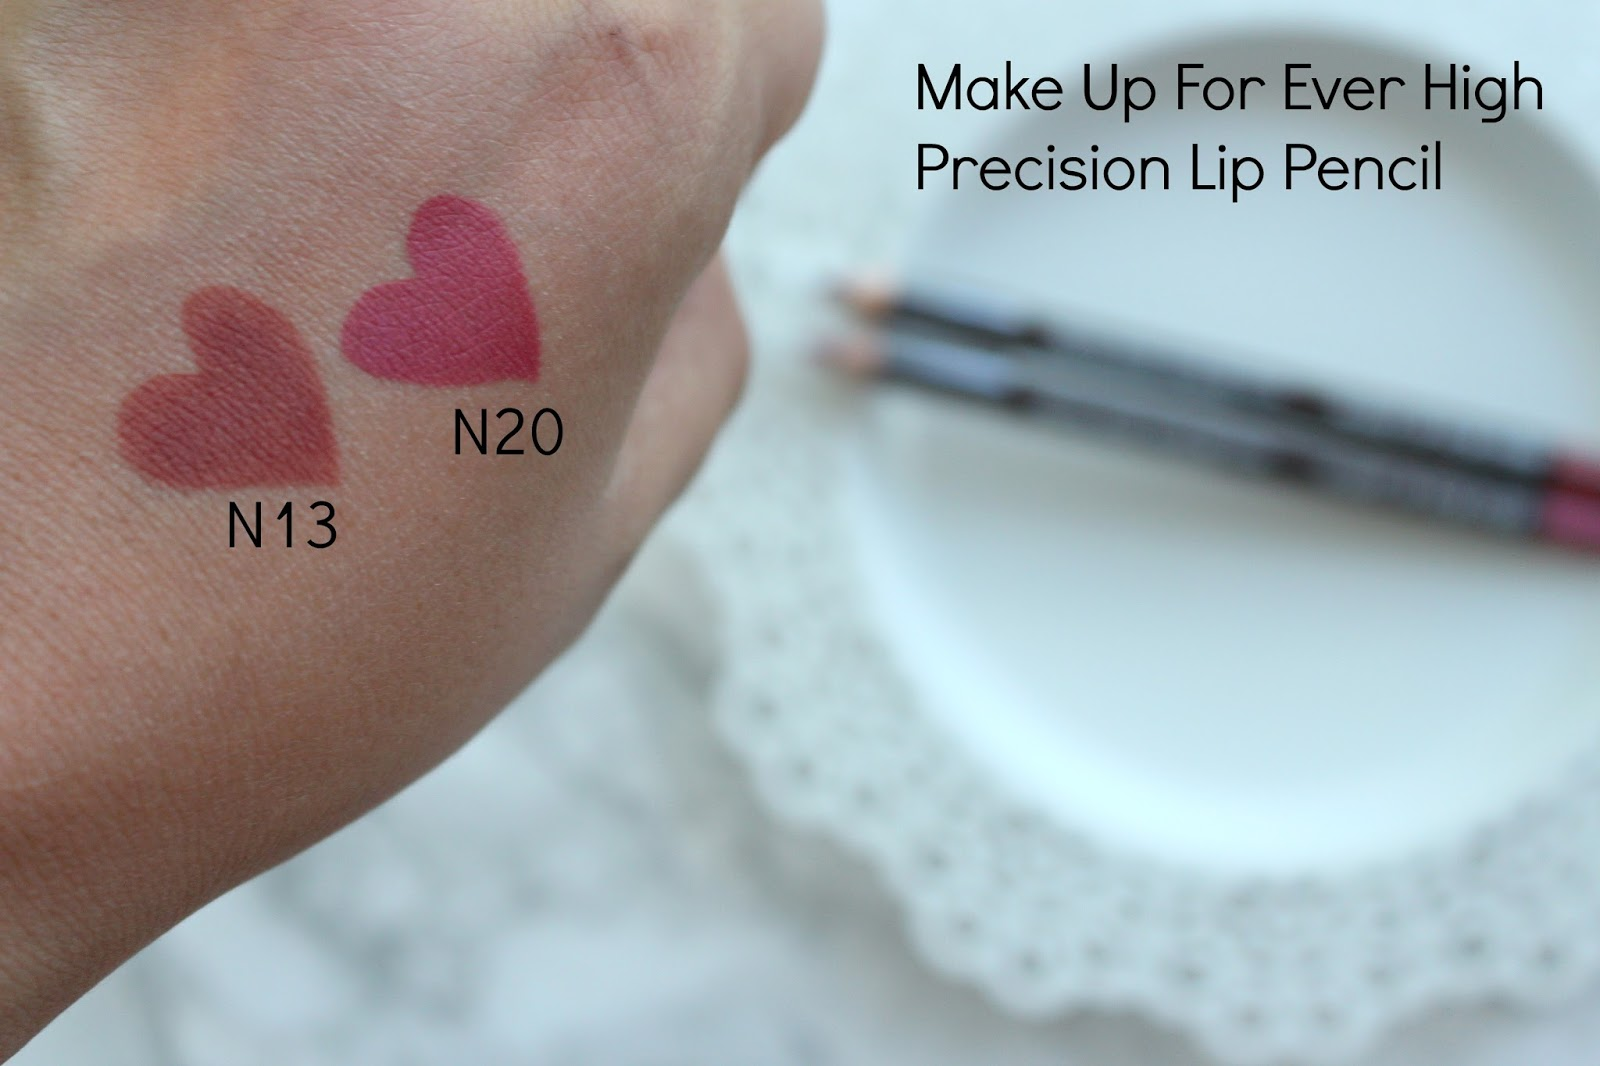 By Comparison The High Precision Lip Pencils Are Stiffer Than Aqua Liners At First I Was